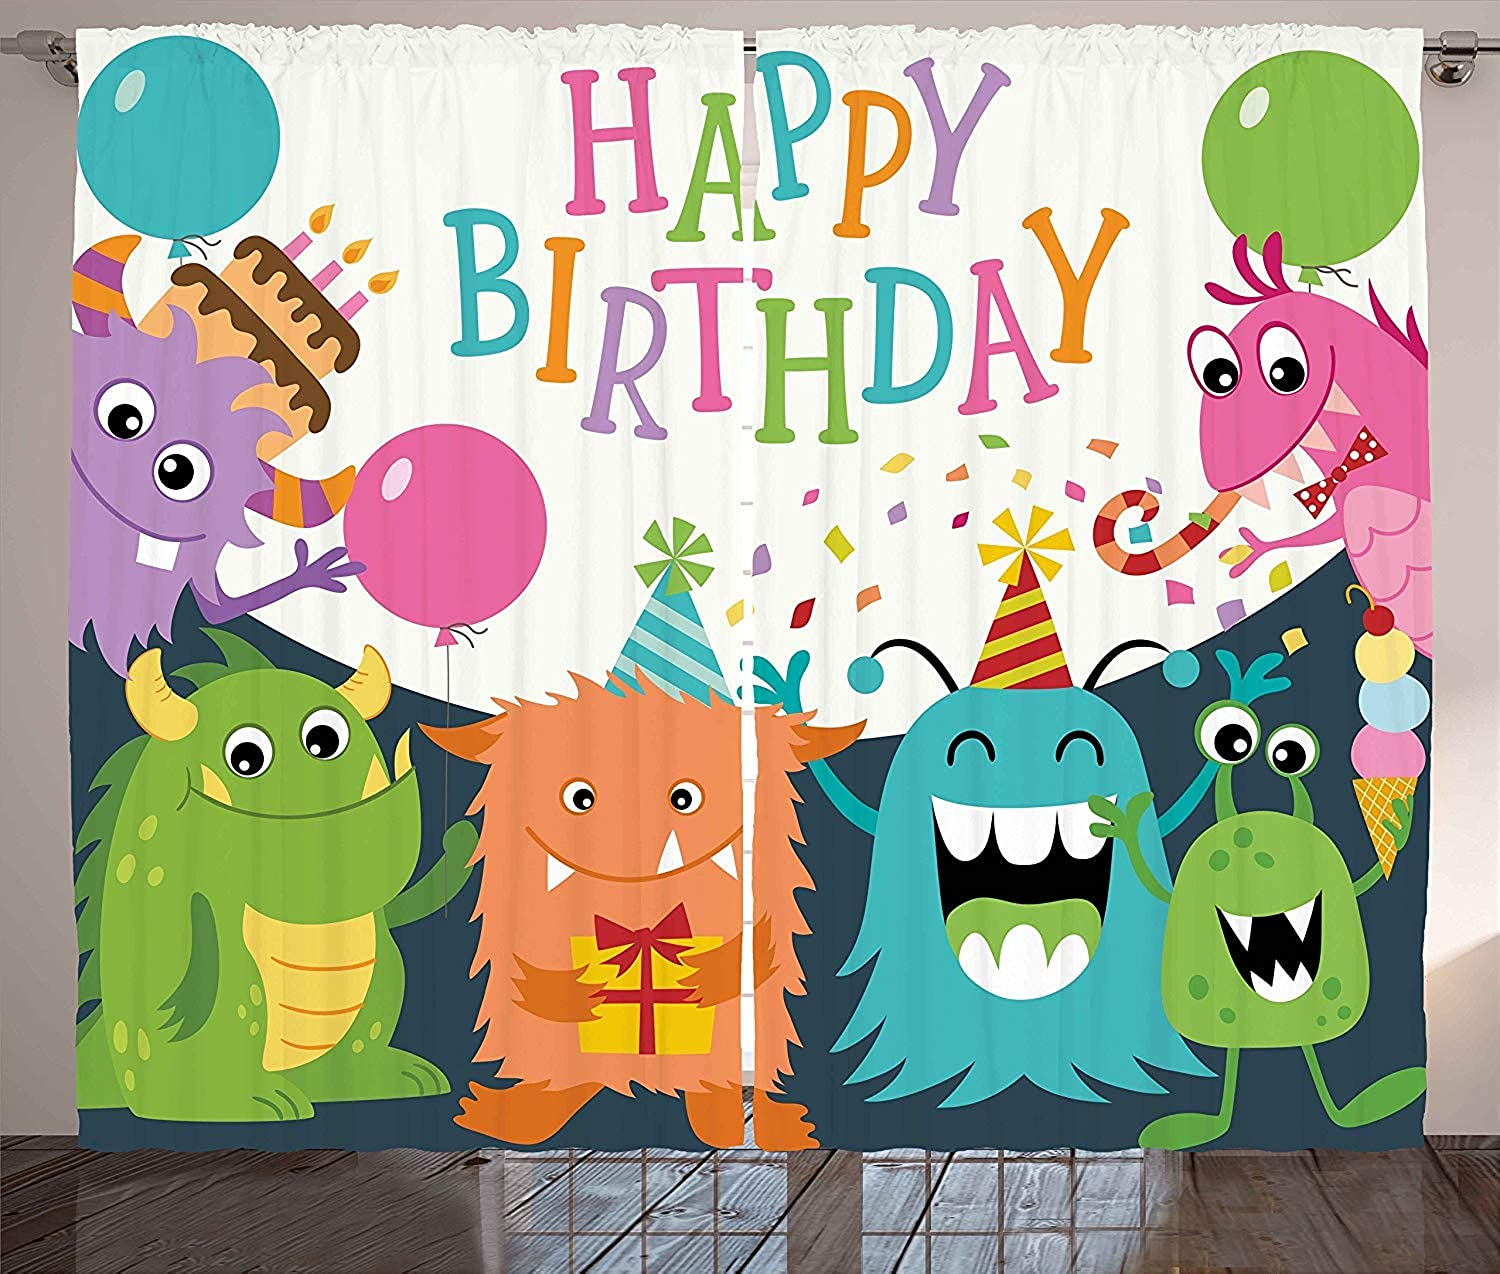 Birthday Decorations for Kids Polyester Curtains with Holes, Little Baby Monsters Party Cones Confetti Balloons Image,2 Panel Drapes Window Treatment for Living Room Bedroom,55 W x 39 L inches